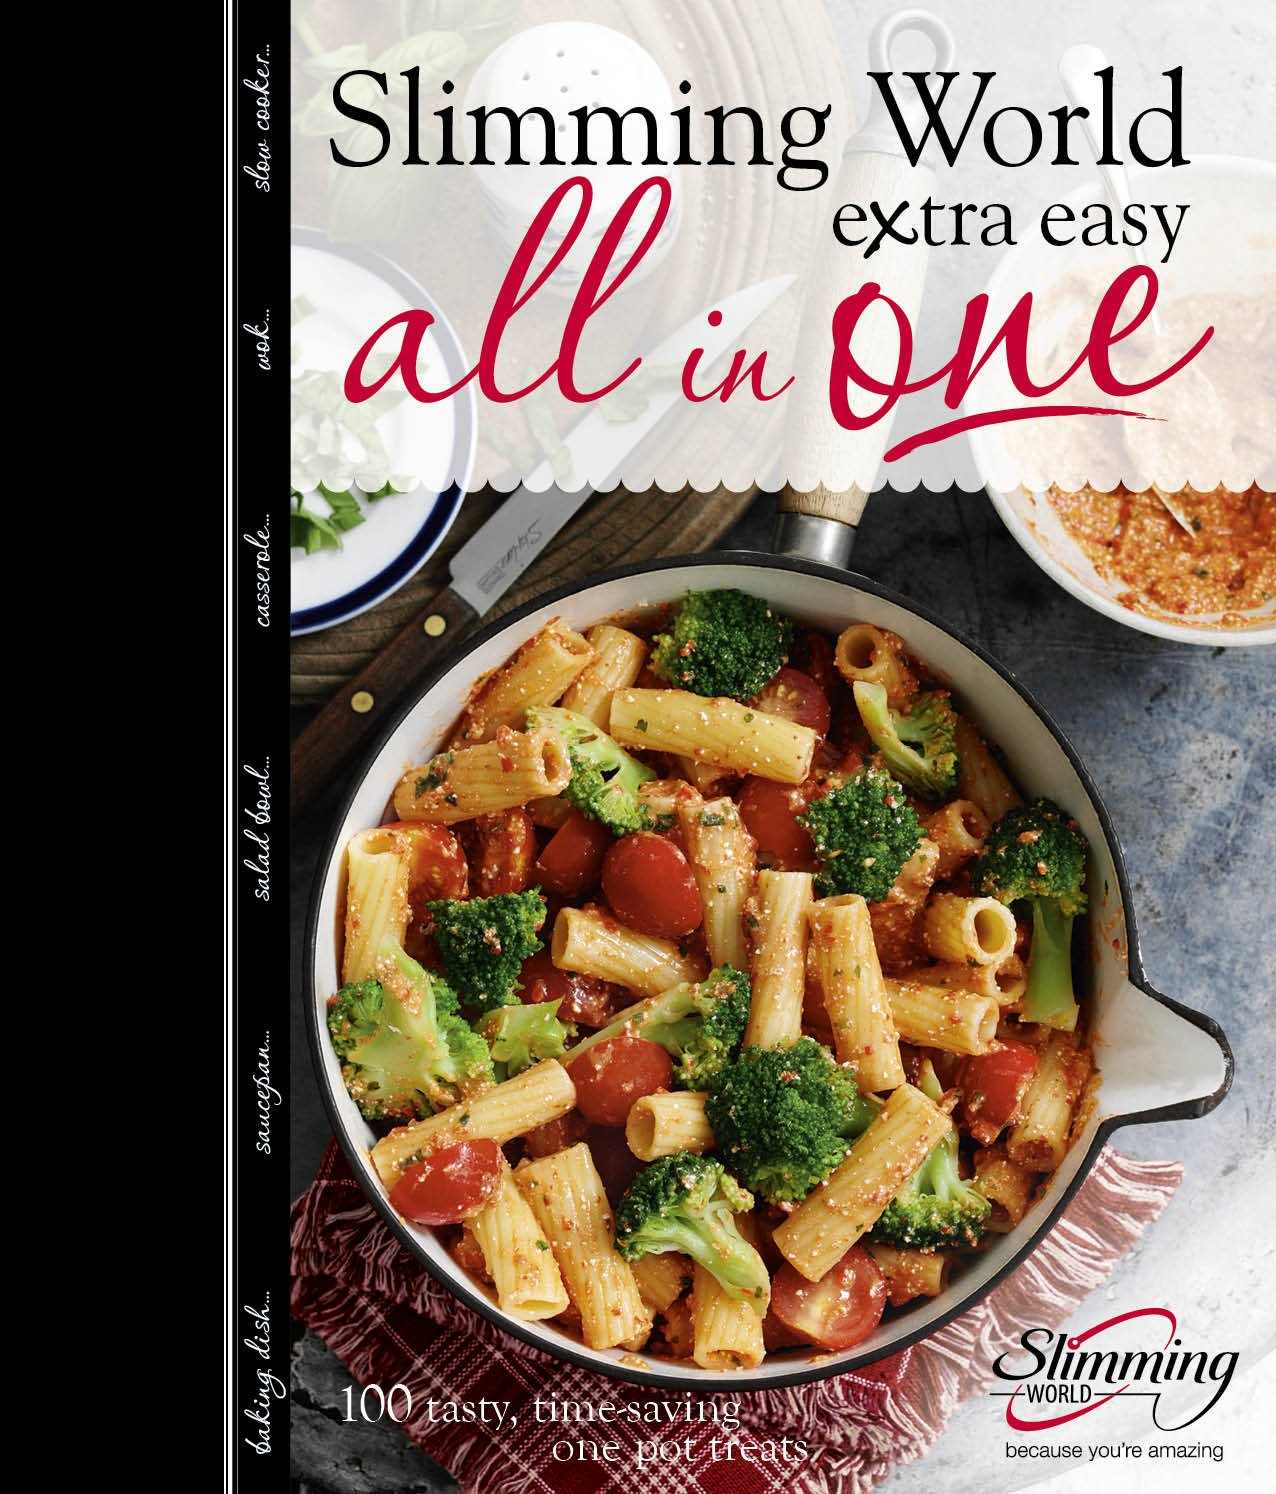 Slimming world extra easy all in one amazon slimming world slimming world extra easy all in one amazon slimming world 9781908256058 books forumfinder Choice Image